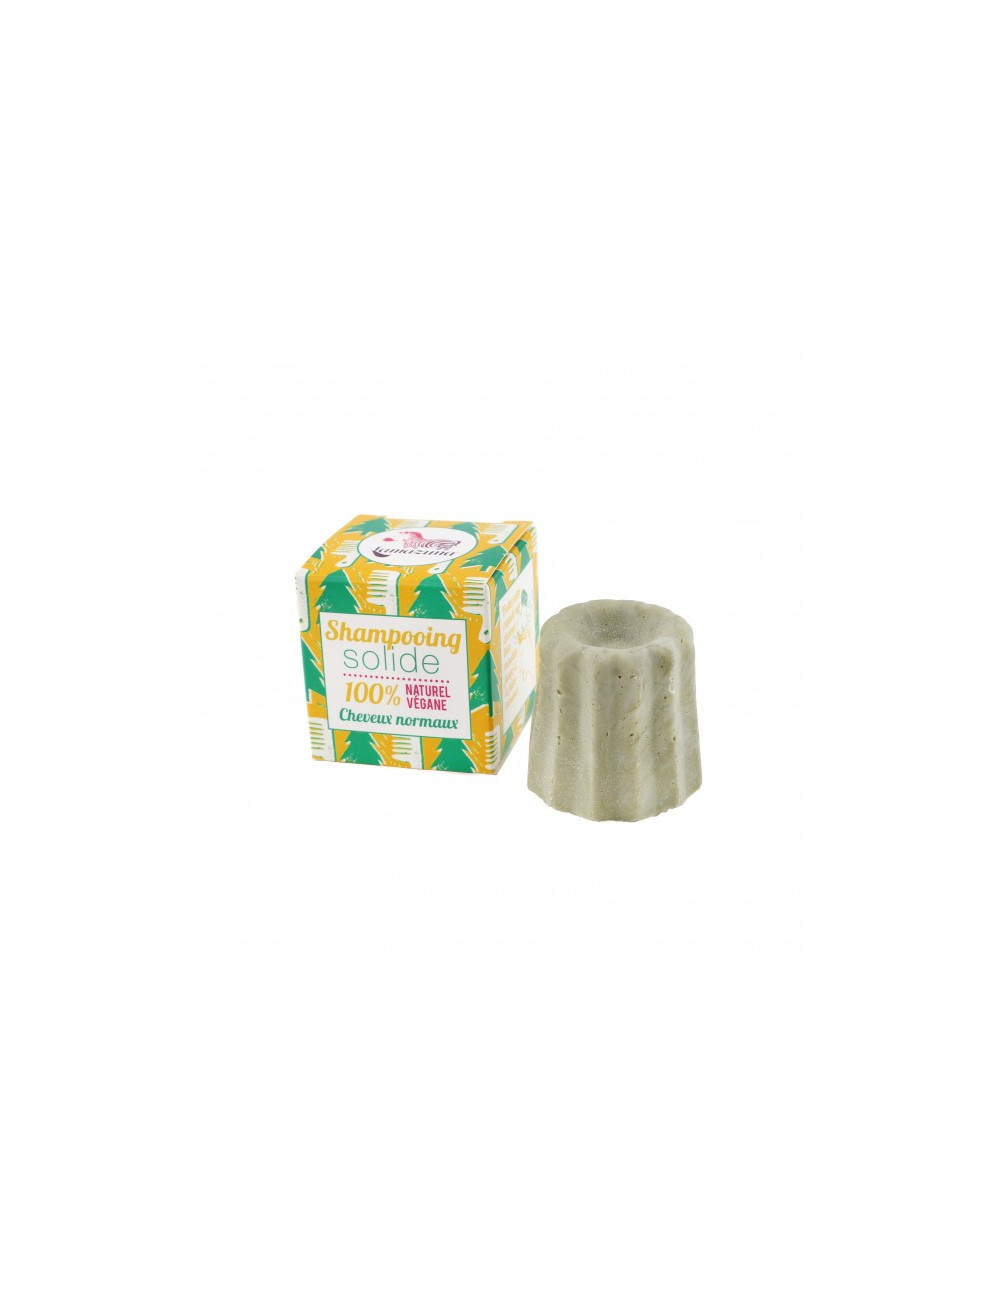 shampoing solide pin sylvestre cheveux normaux